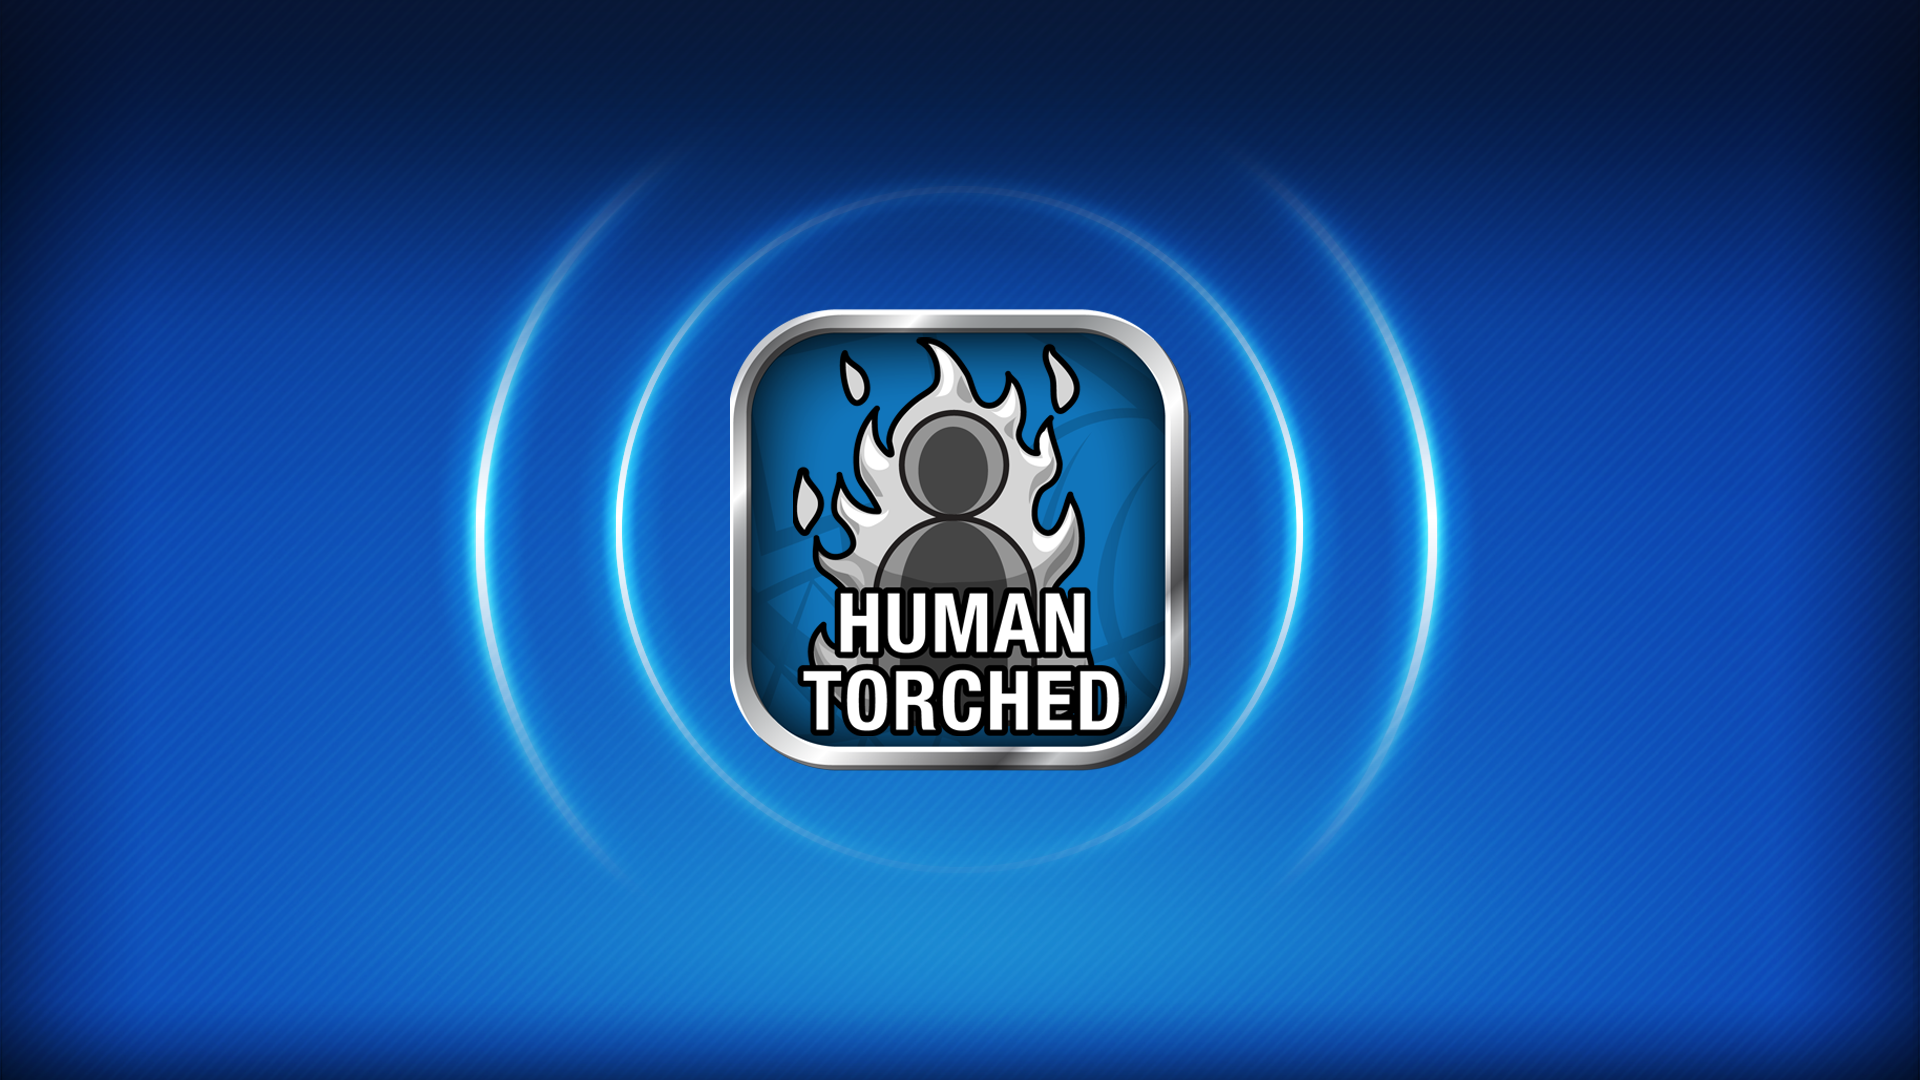 Human Torched